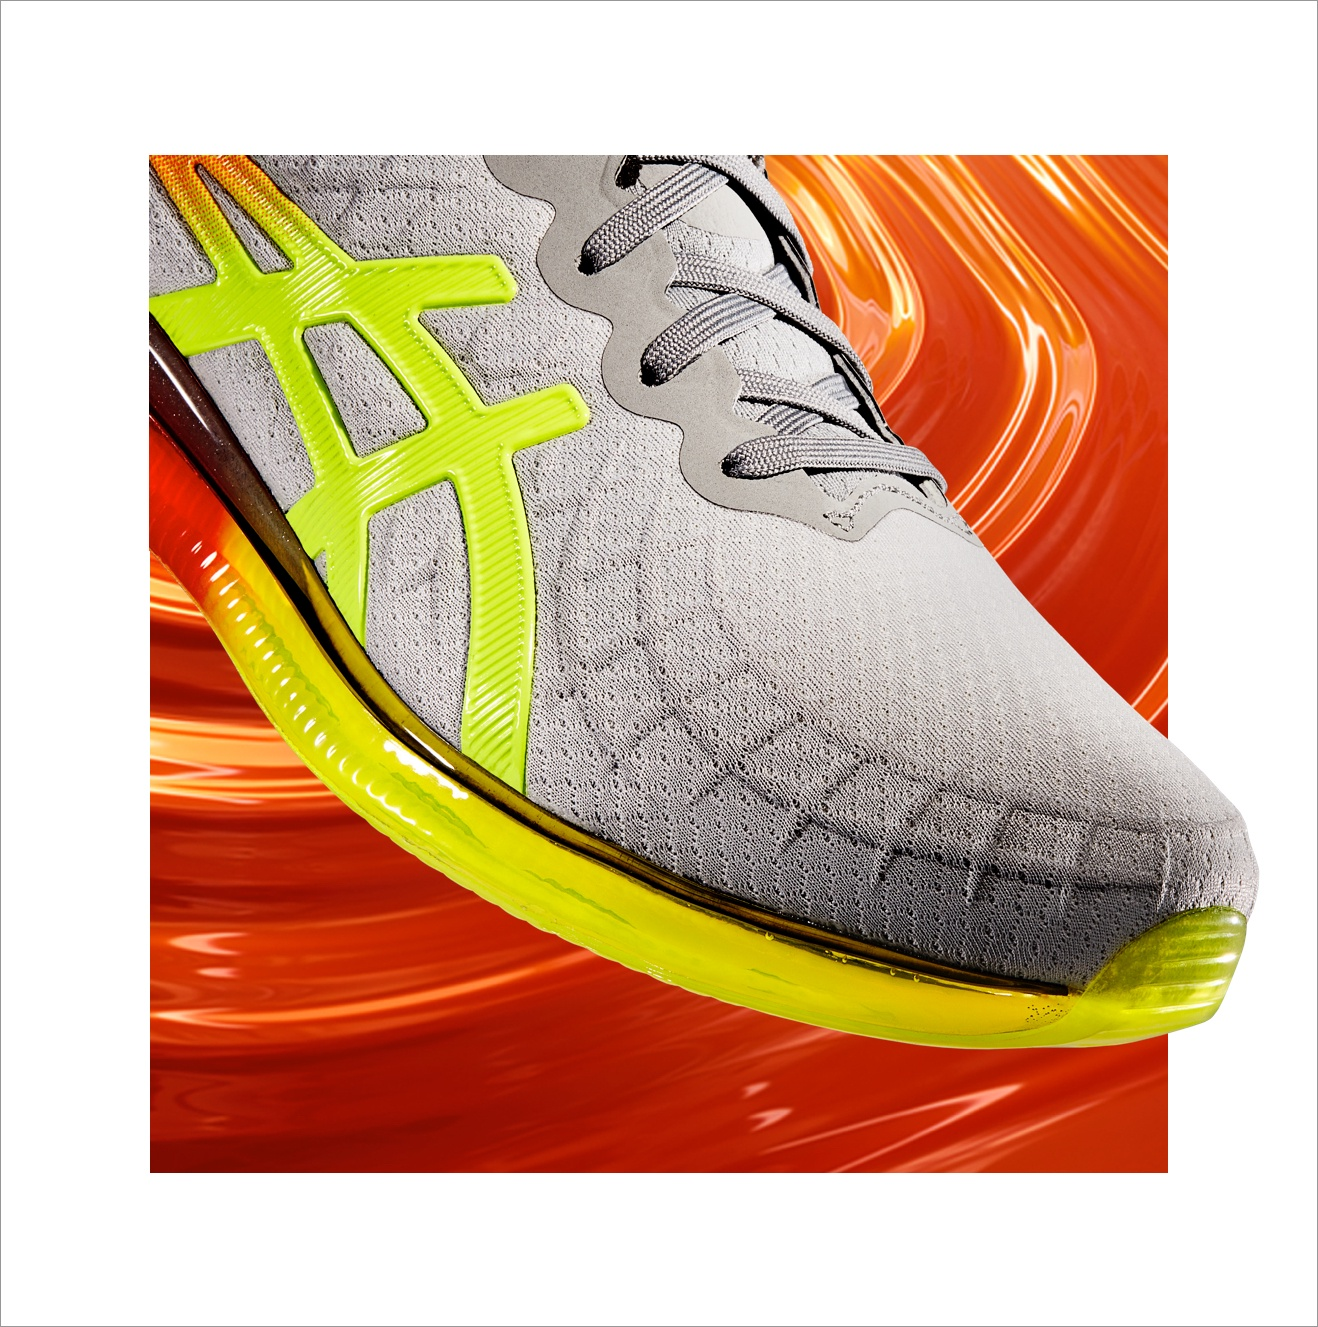 yellow and grey quantum infinity shoe on top of an orange gel background